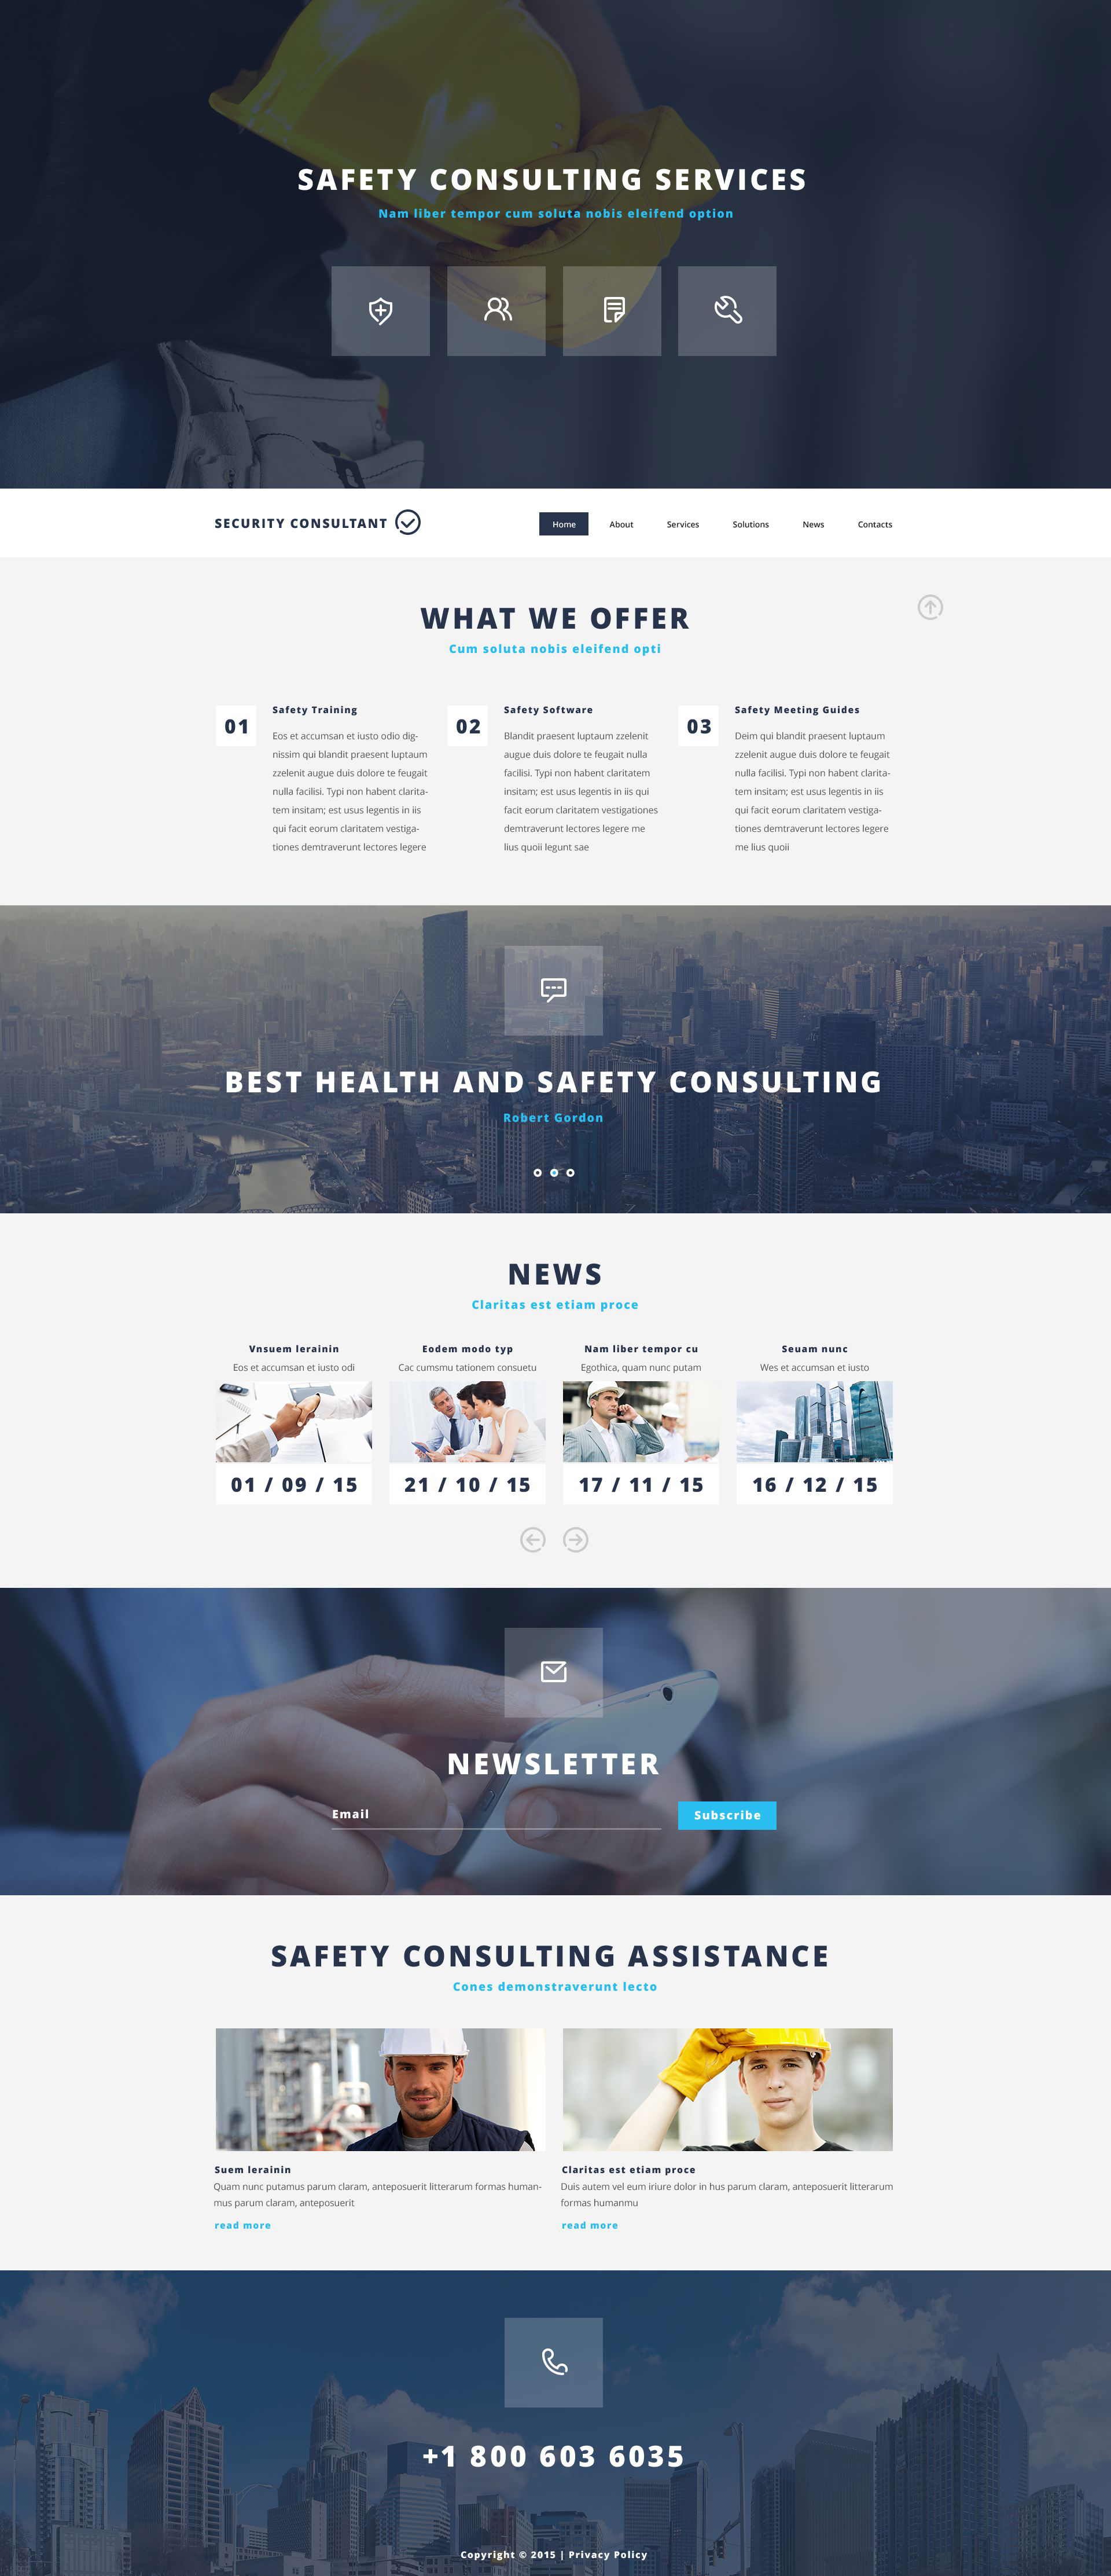 The Safety Consultant Responsive Javascript Animated Design 54017, one of the best website templates of its kind (security, most popular), also known as safety consultant website template, services company website template, safe website template, safety website template, safeguard website template, protection system website template, information website template, data website template, service solution website template, business website template, home website template, secure and related with safety consultant, services company, safe, safety, safeguard, protection system, information, data, service solution, business, home, secure, etc.